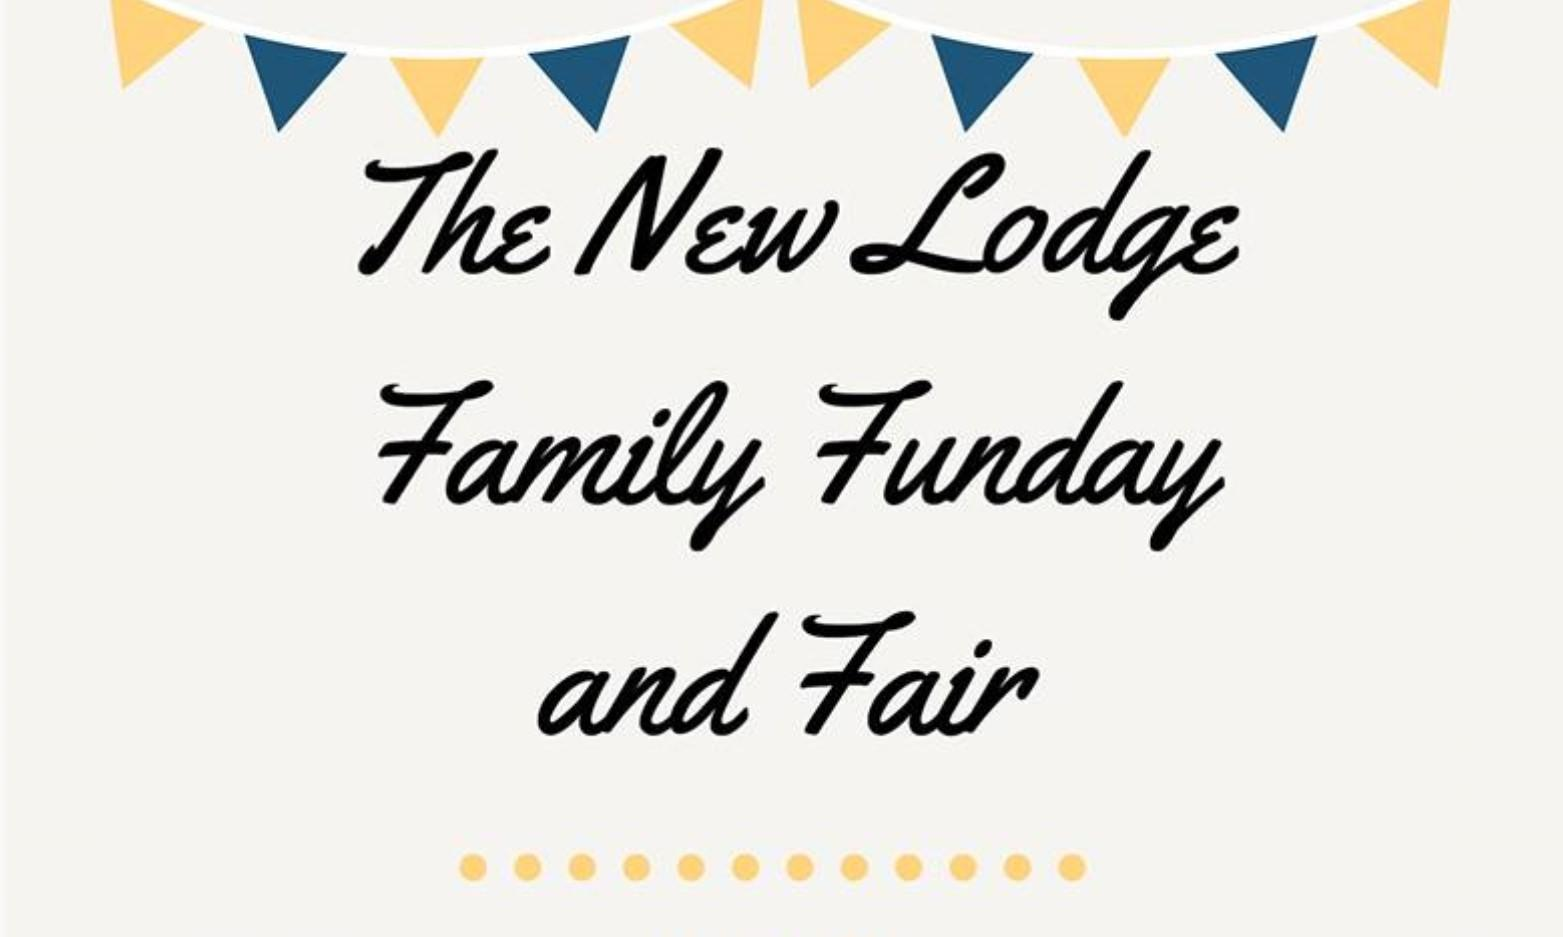 New Lodge Family Funday